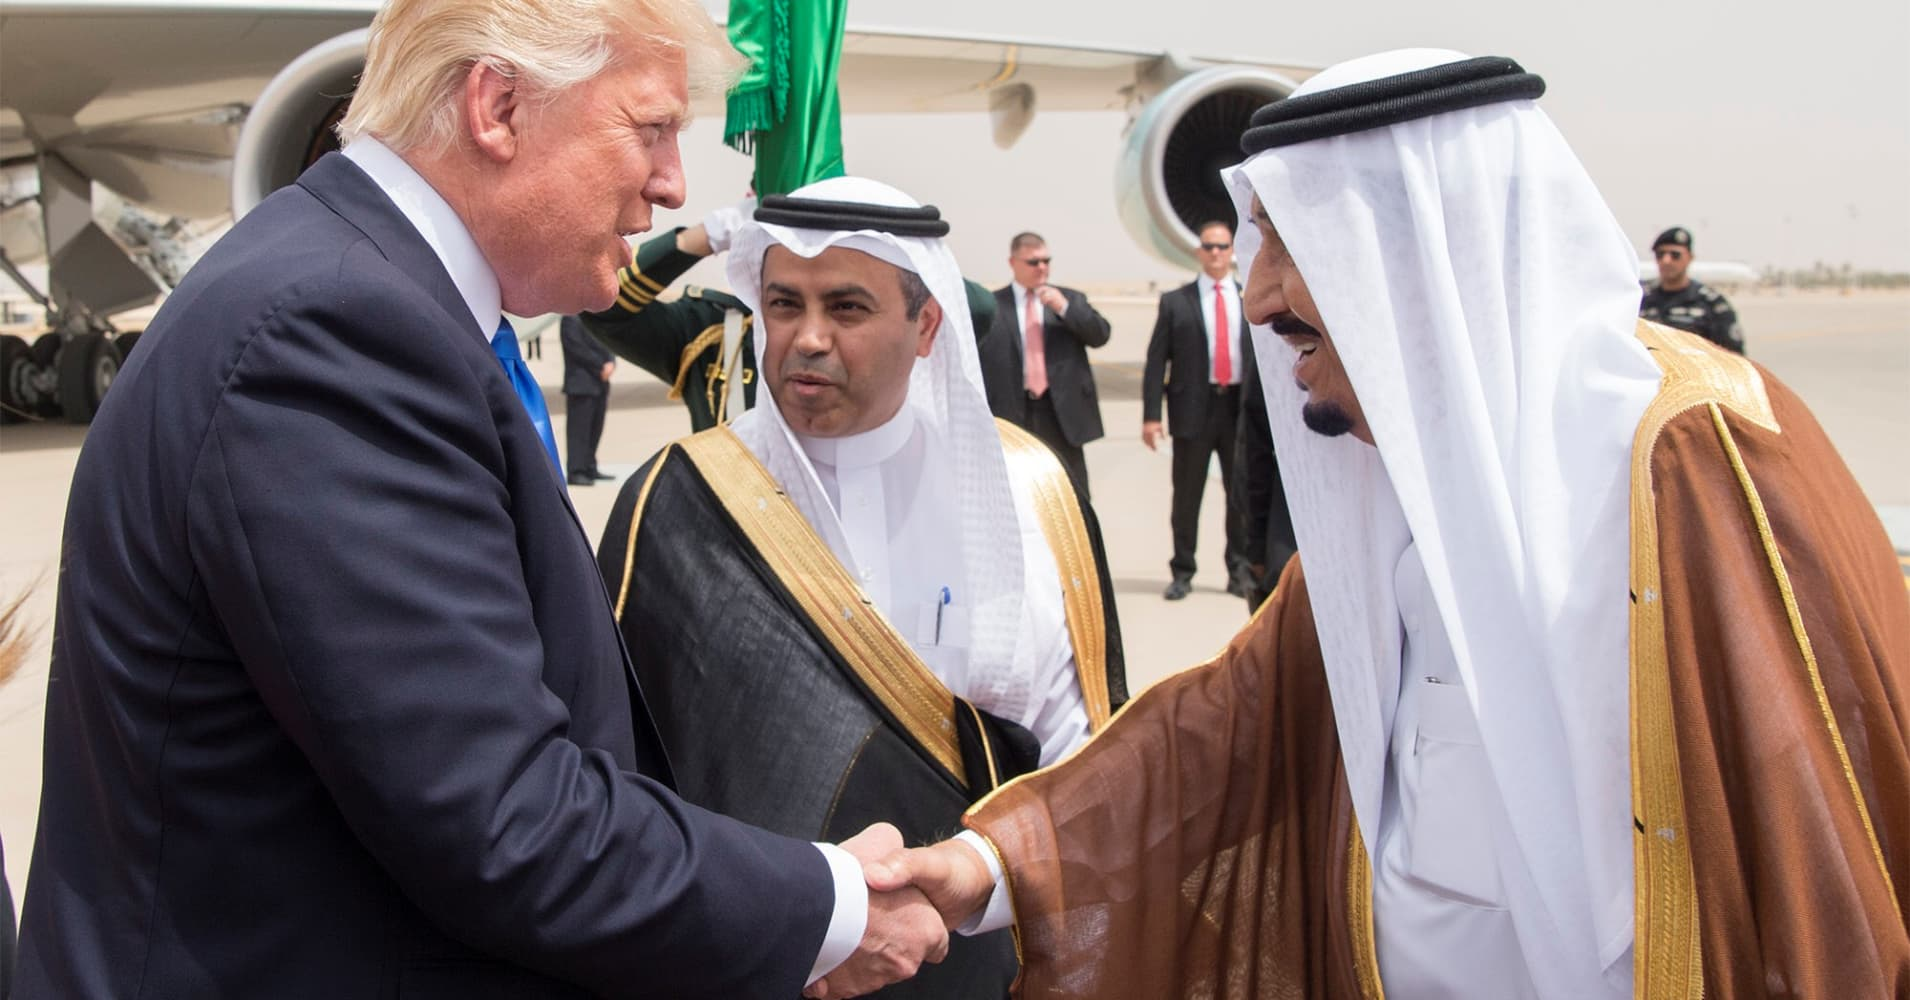 Trump 'immediately sending' Pompeo to meet Saudi king as outcry grows over missing journalist